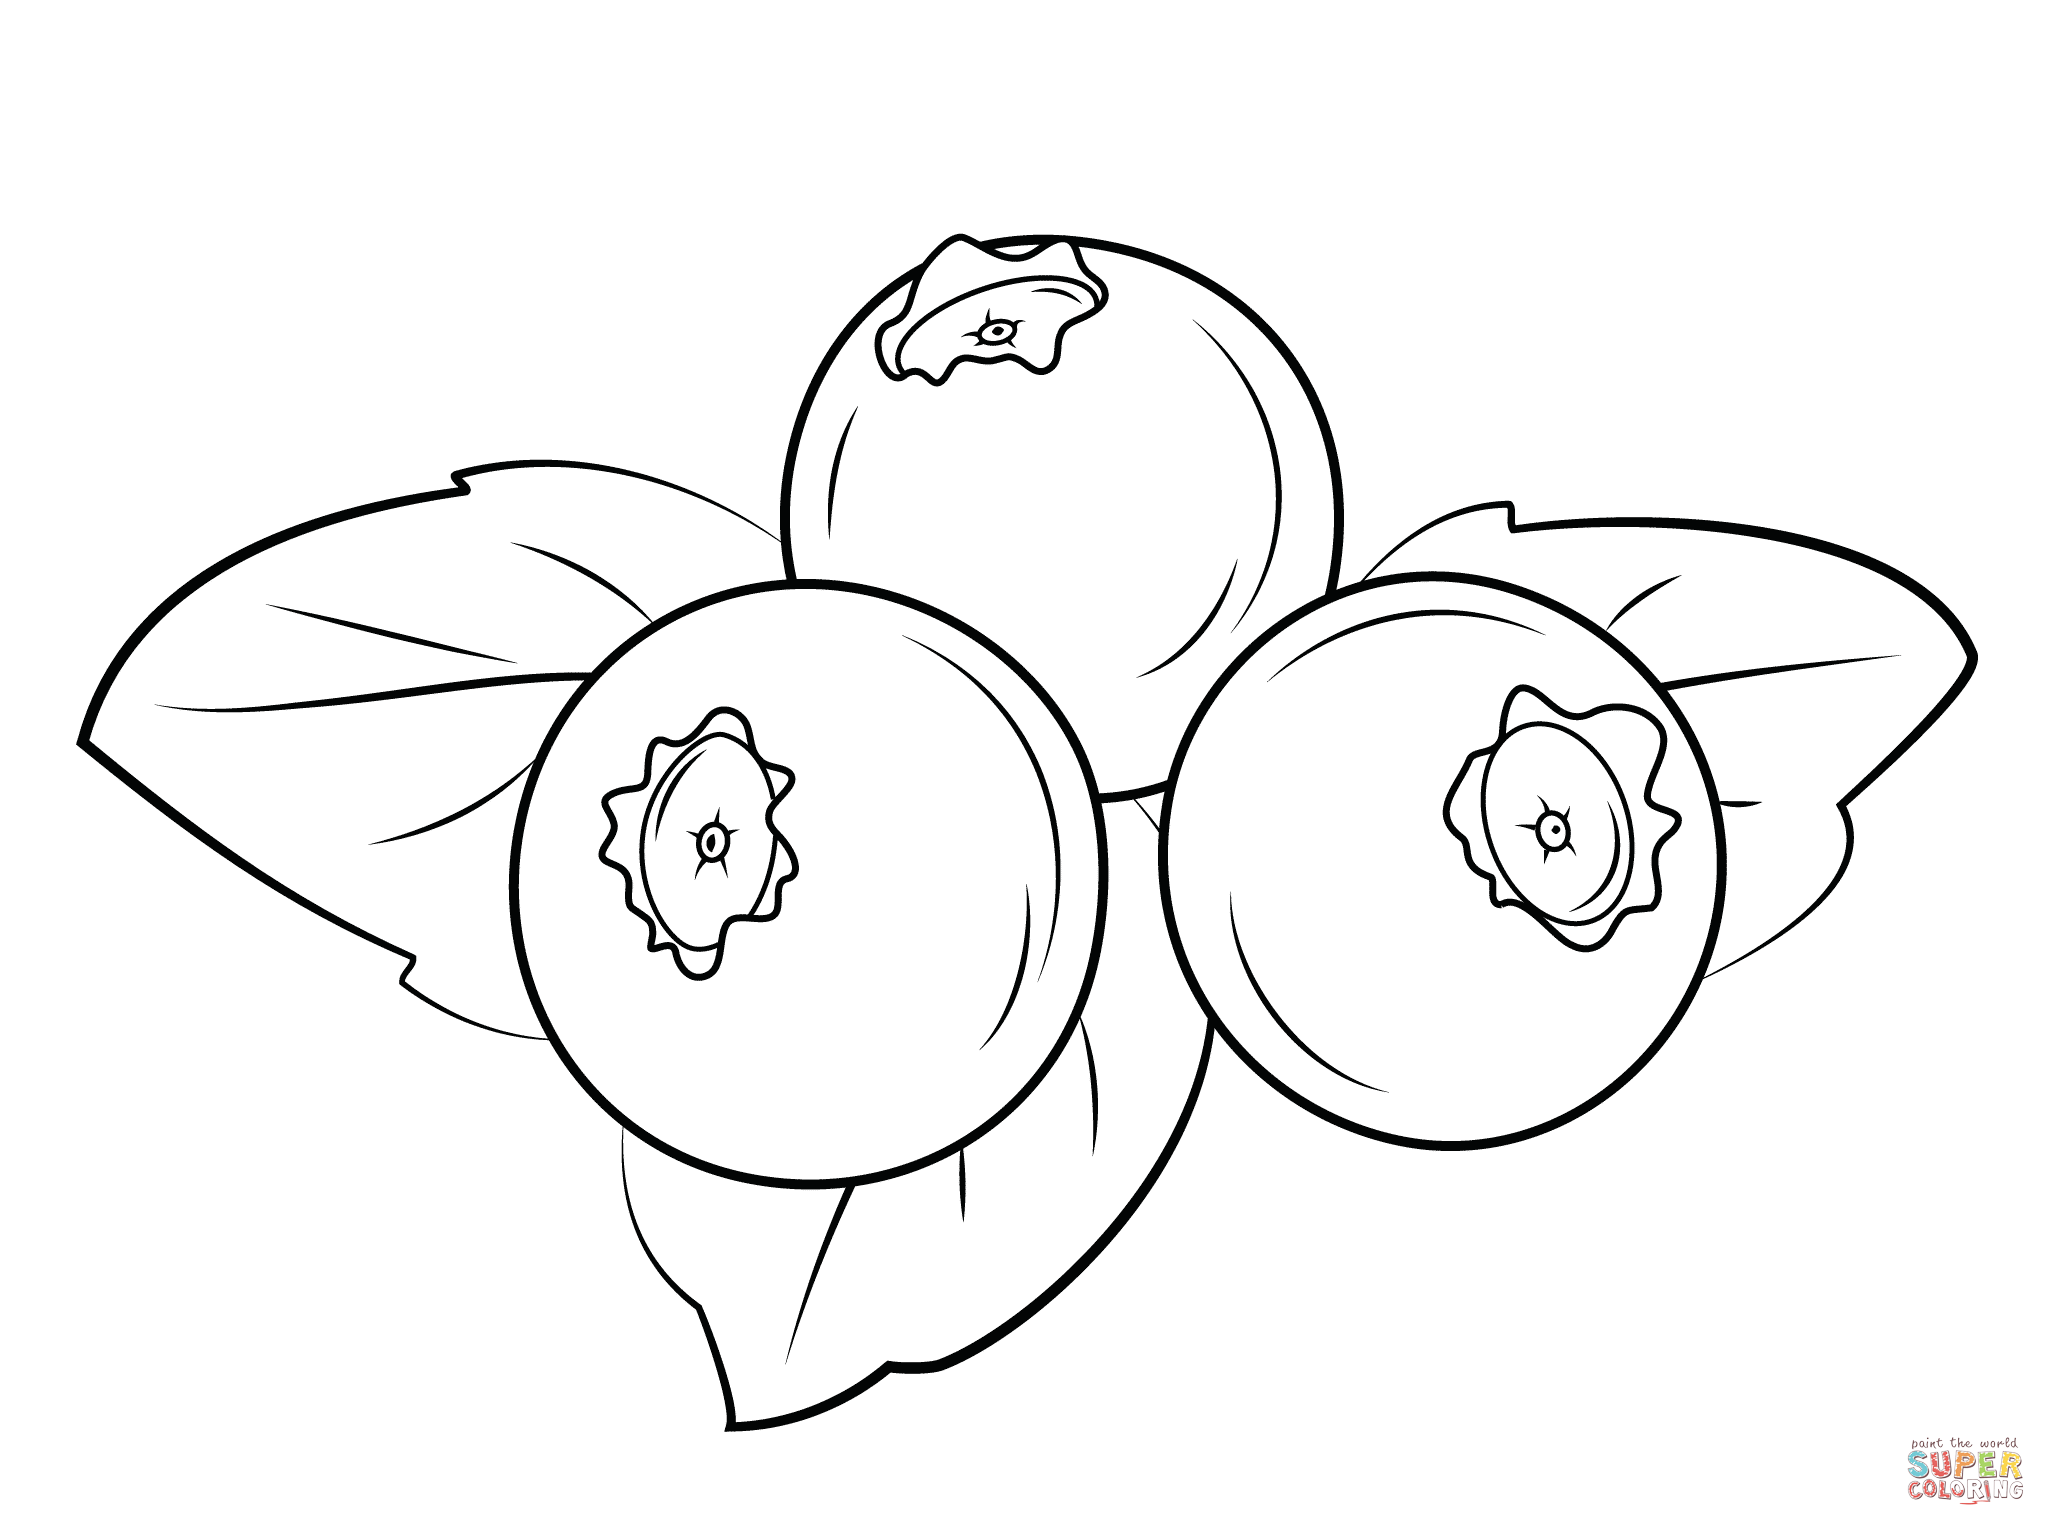 Line Drawing In C : Blueberries super coloring drawing flowers tutorials